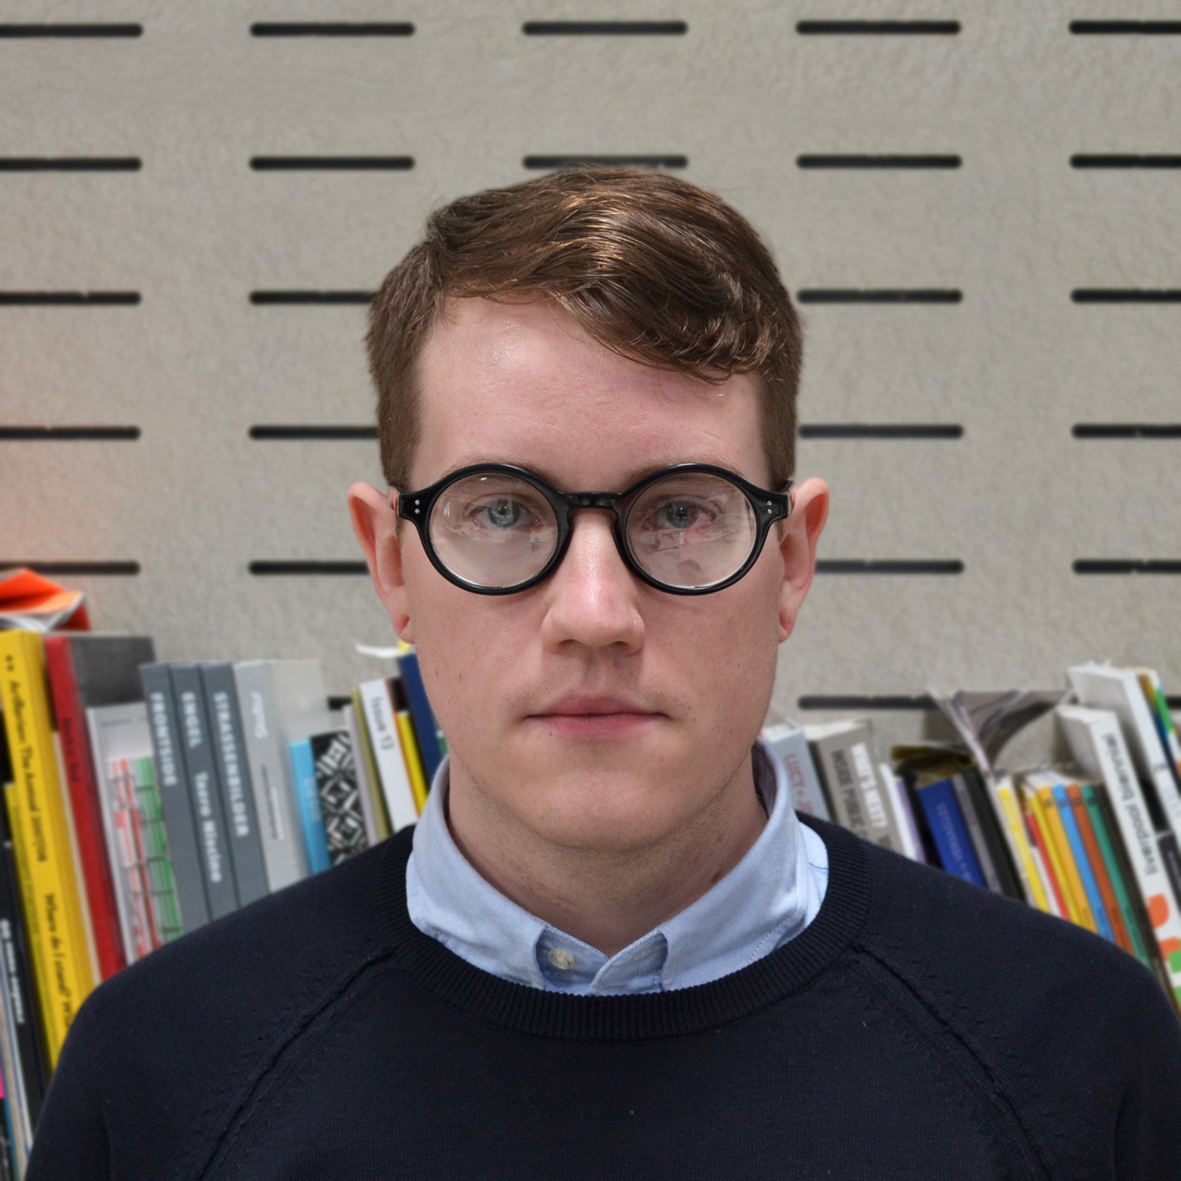 >James previously worked at The Tetley (Leeds) as Programme Coordinator helping deliver the public programme of exhibitions and events. James is co-founder and a&nbsp;member of curatorial collective Mexico which has produced projects for Eastside Projects, Two Queens, and Focal Point Gallery among others, as well as co-producing city-wide arts programme About Time across Leeds in 2015.